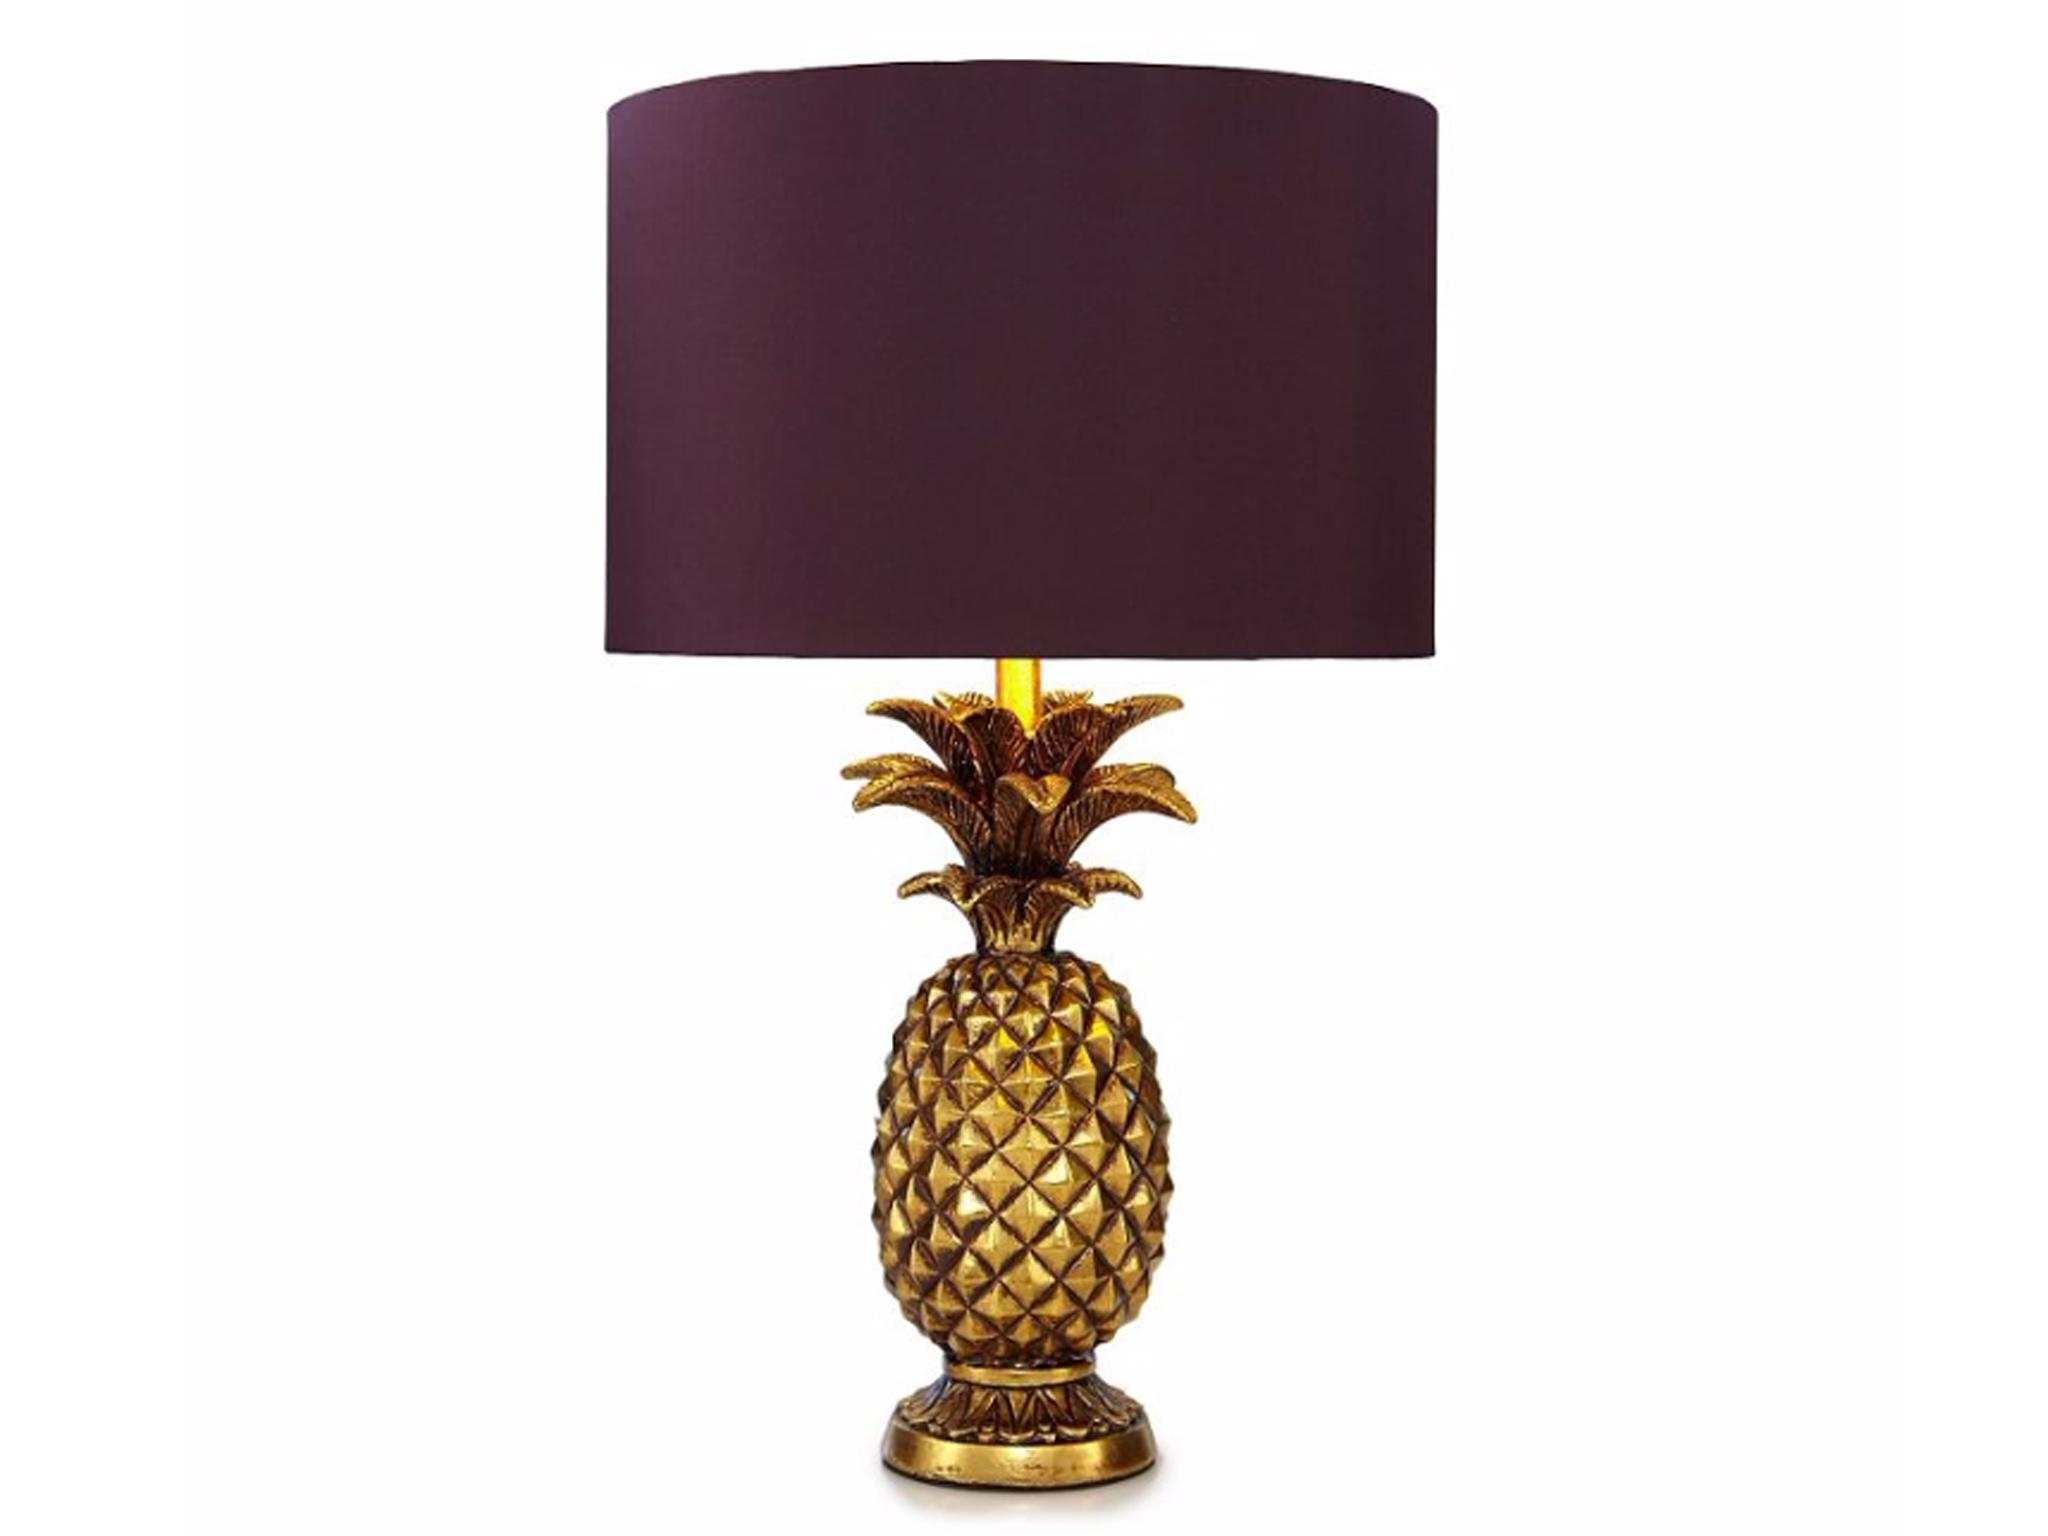 Widely Used Debenhams Table Lamps For Living Room With Regard To 10 Best Table Lamps (View 15 of 15)